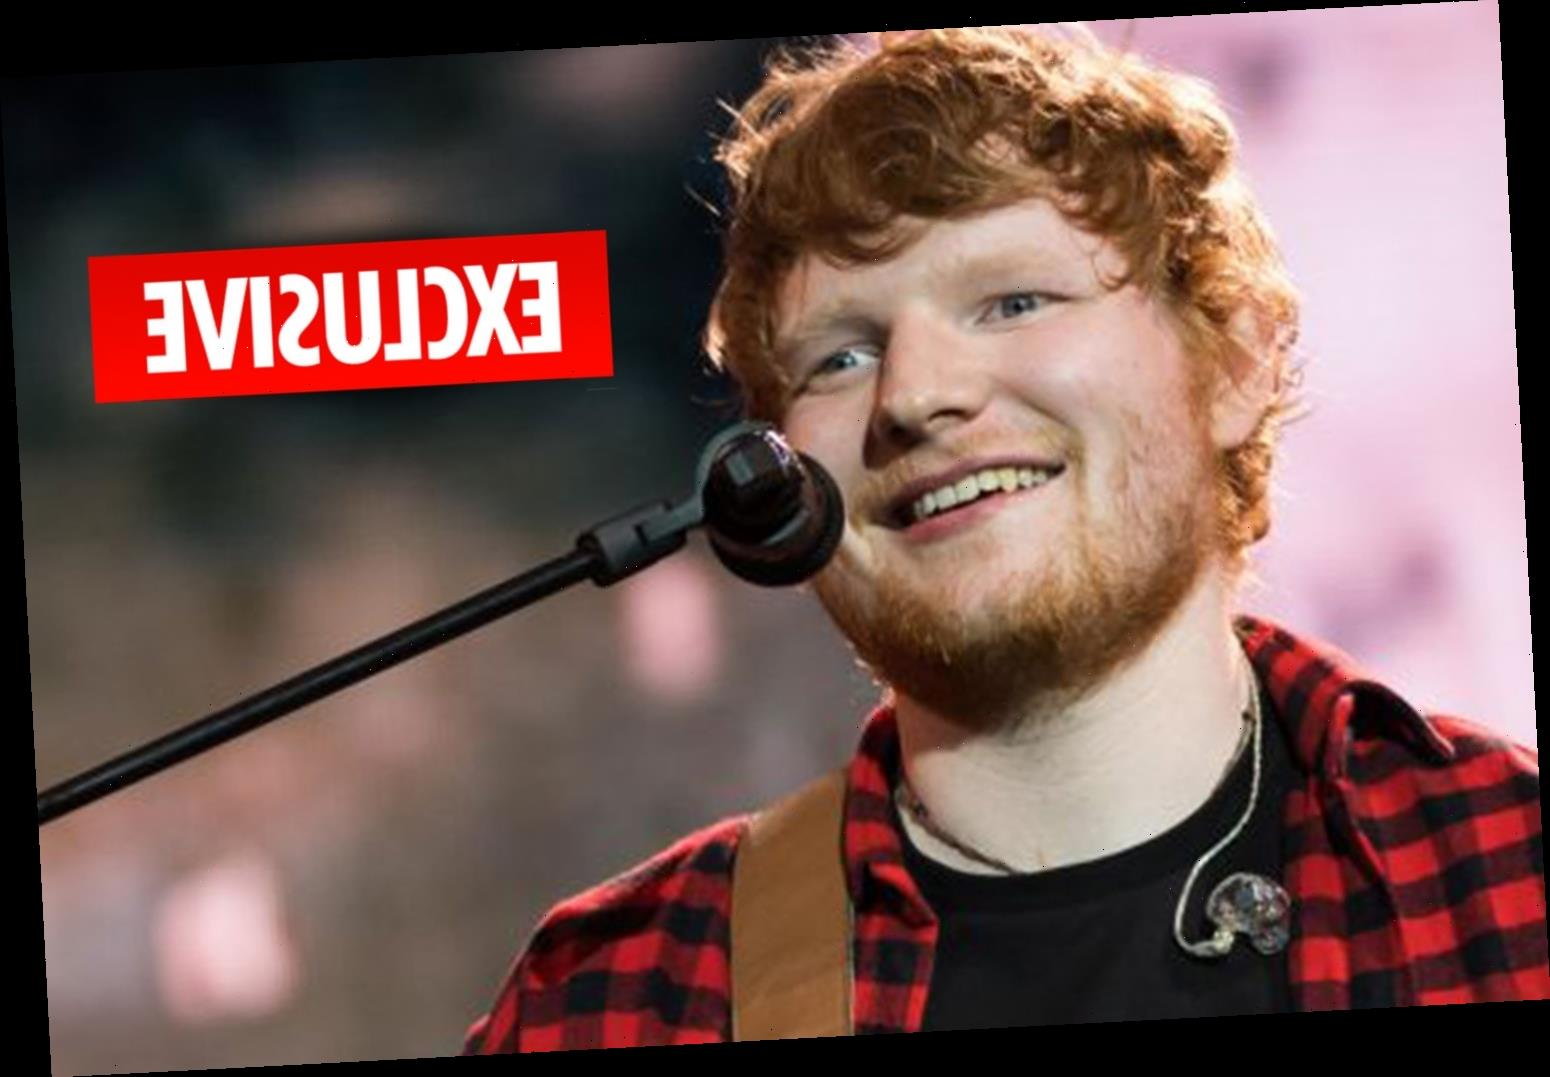 Ed Sheeran's monster tax bill revealed after raking in £106m from his tours in two years – The Sun